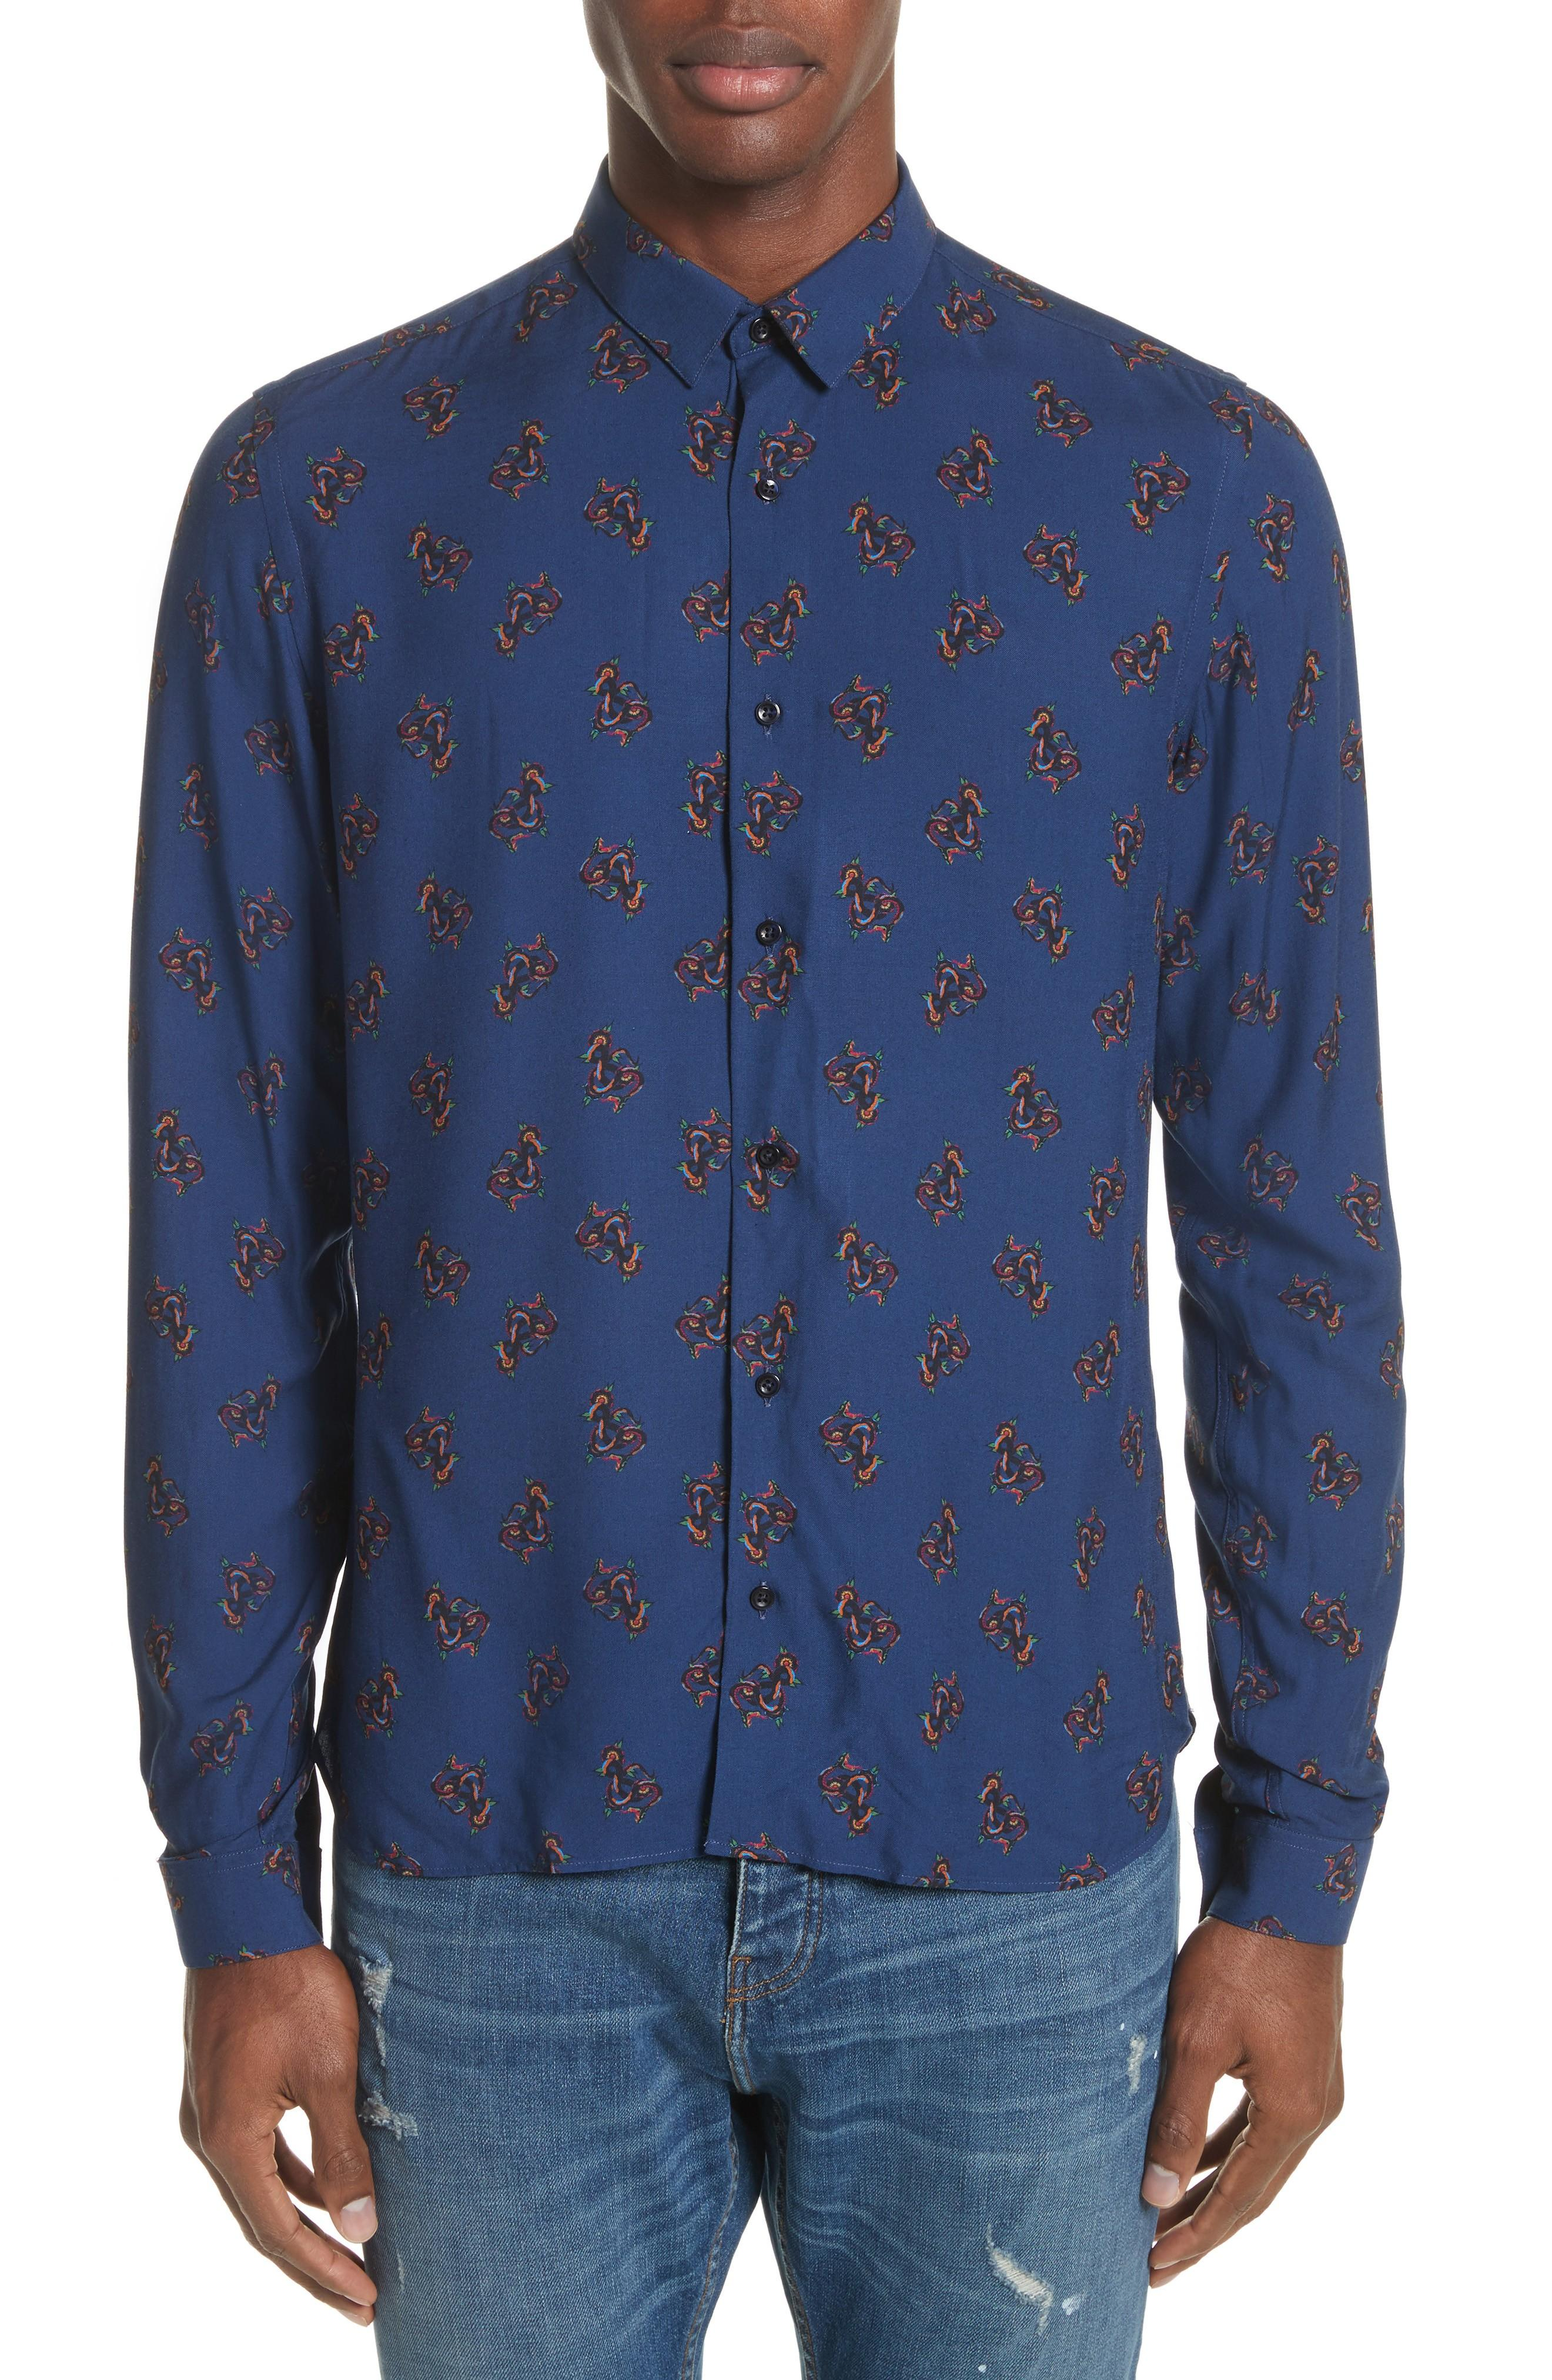 The Kooples Print Woven Shirt In Navy